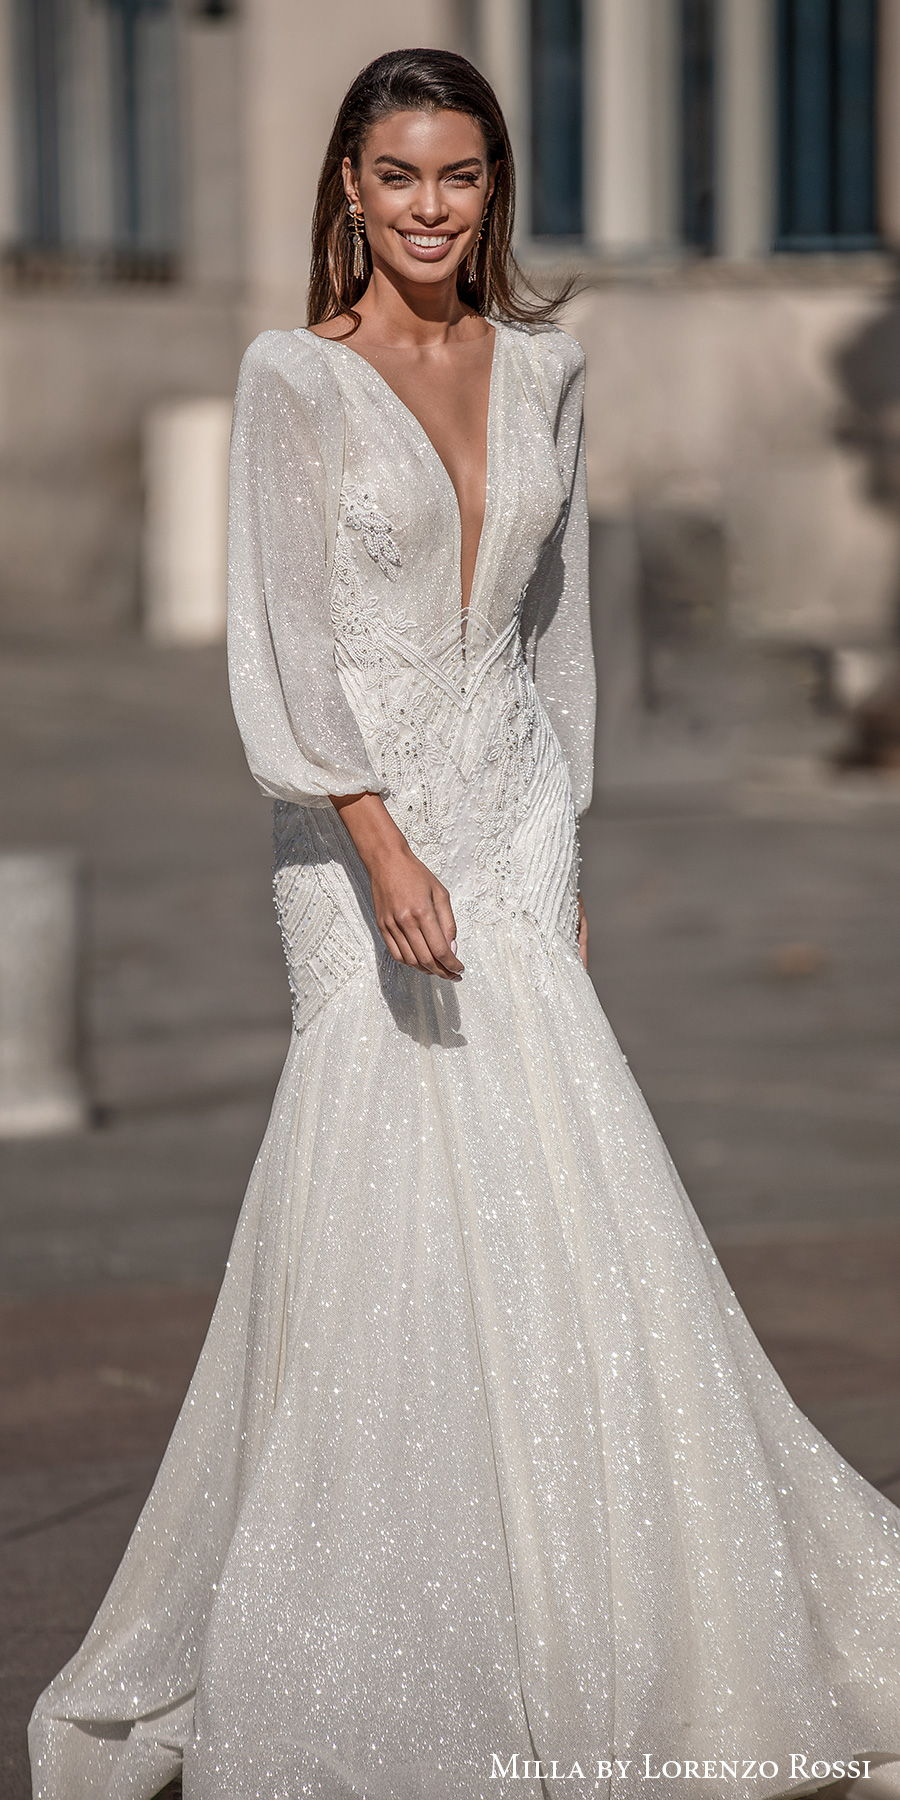 milla lorenzo rossi 2021 bridal long bishop sleeves deep plunging v neck full embellishment glitter elegant mermaid wedding dress v back chapel train (jayden) mv